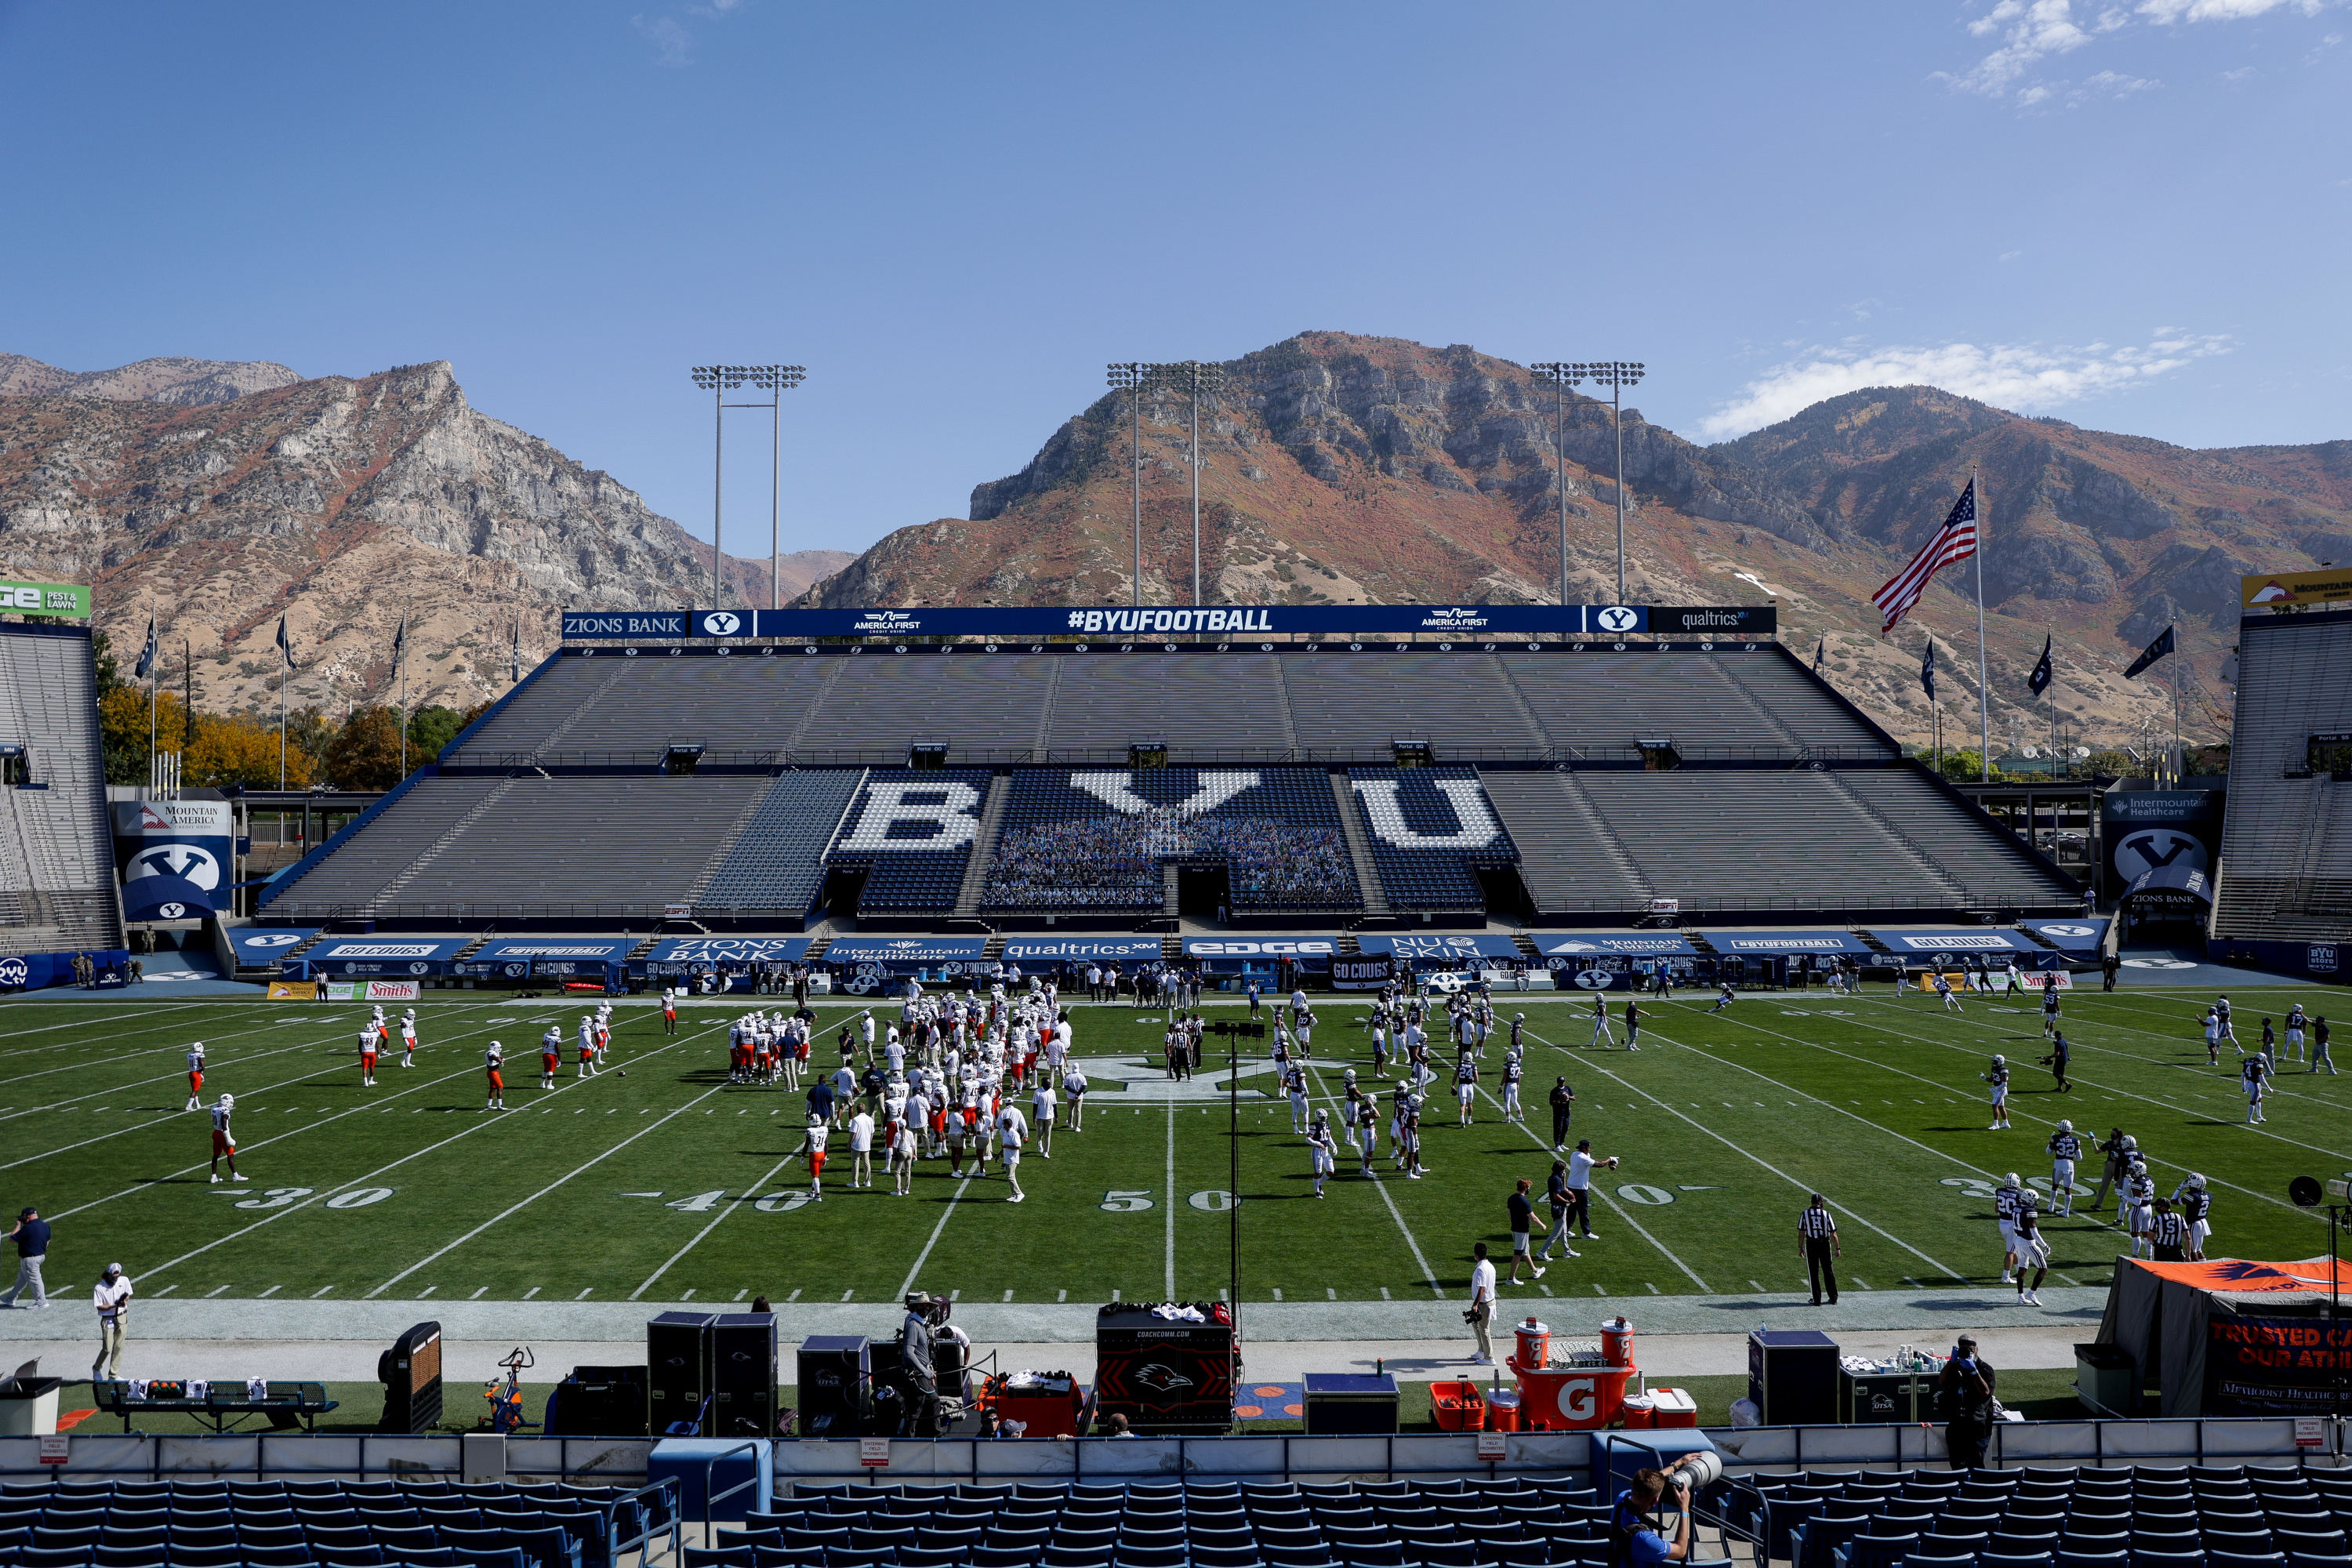 UTSA and BYU warm up before playing a game without fans at LaVell Edwards Stadium in Provo on Saturday, Oct. 10, 2020.